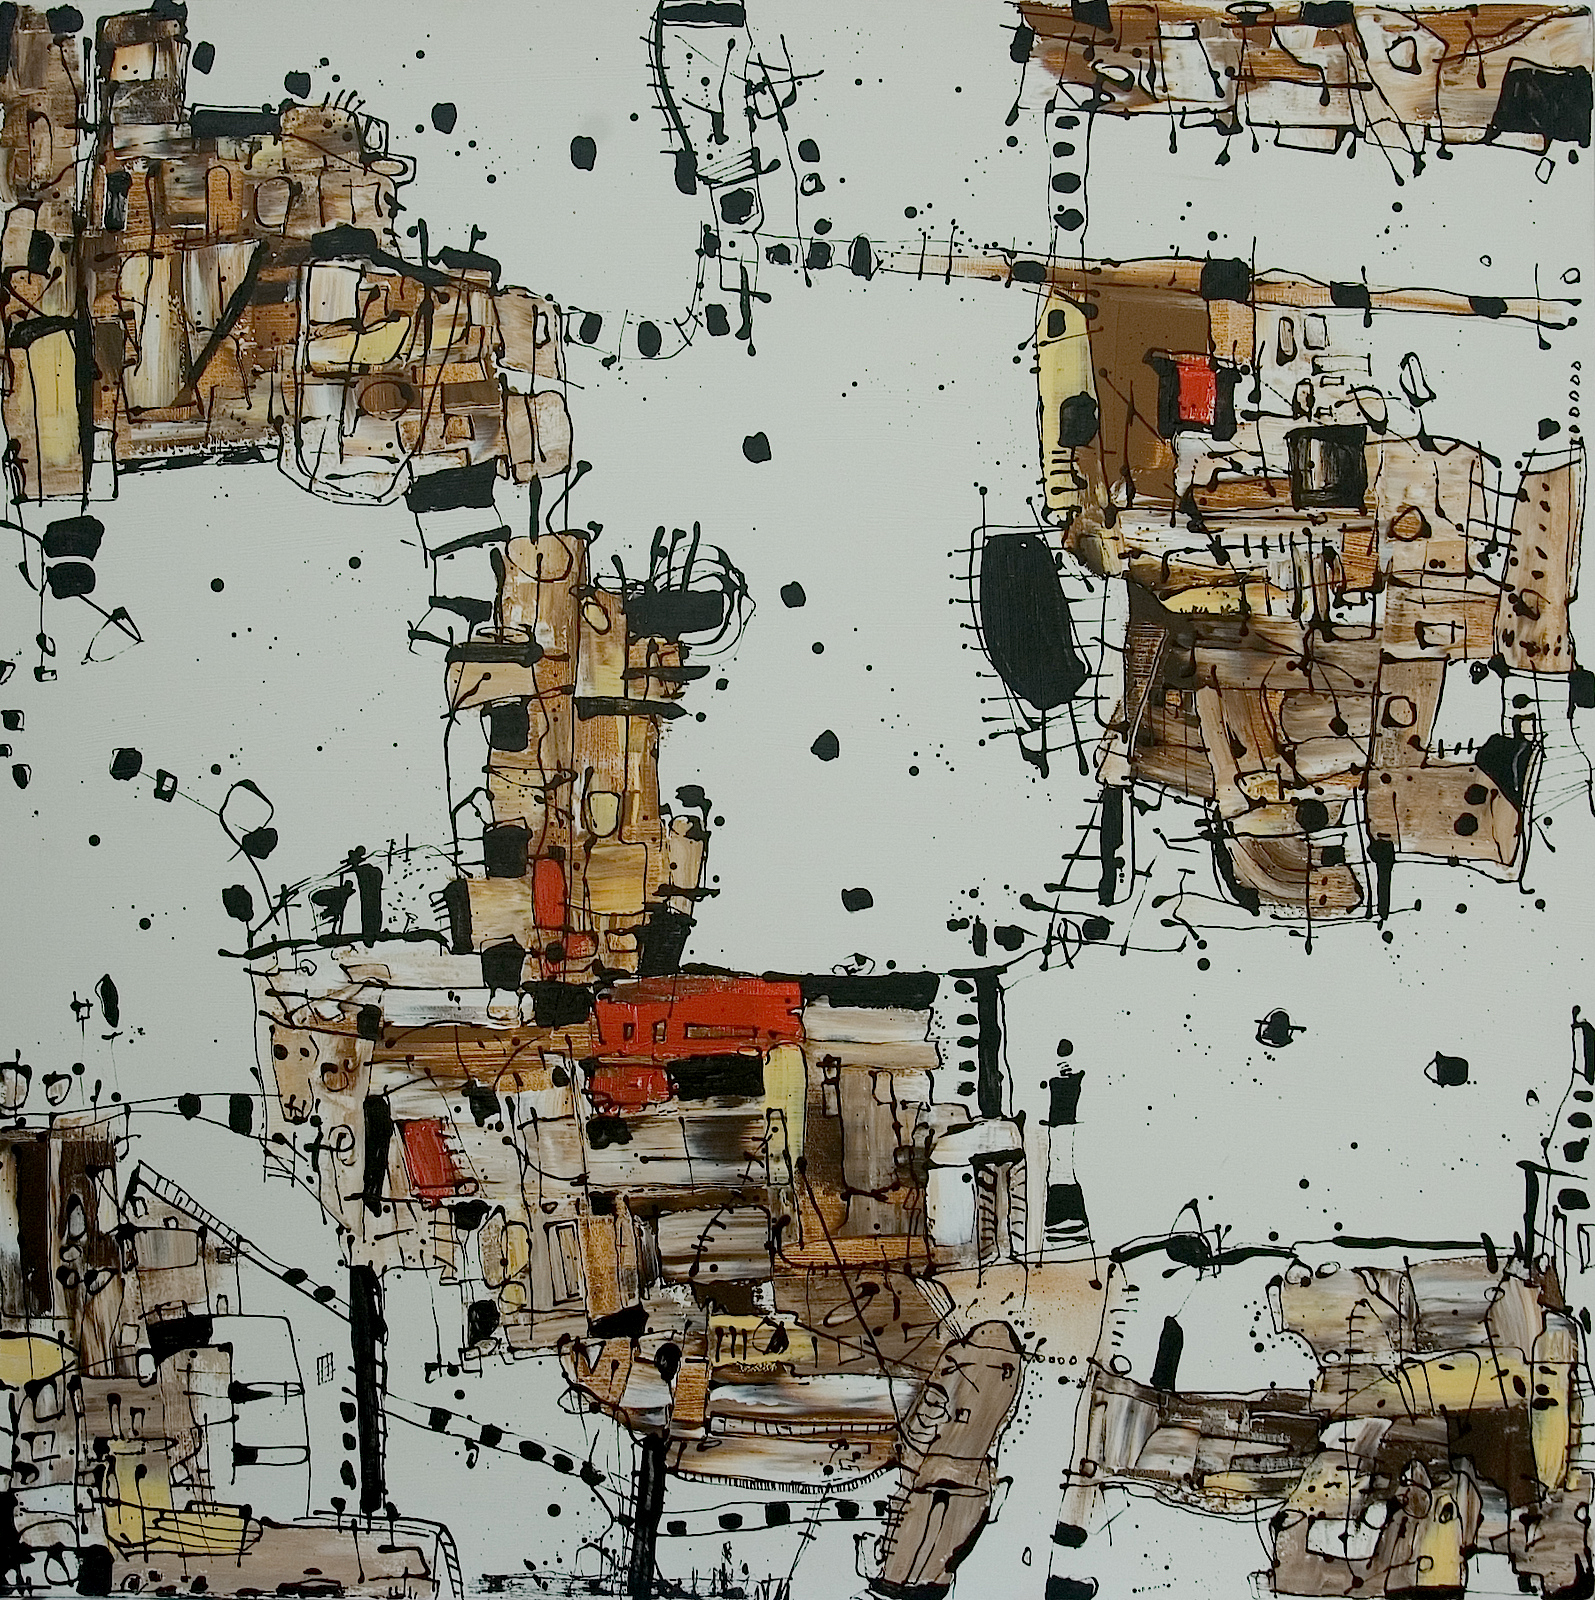 Hanging bridges & Housing colonies  Beyond Barcelona Series, 2007 Acrylic on canvas, 150 x 150 cm